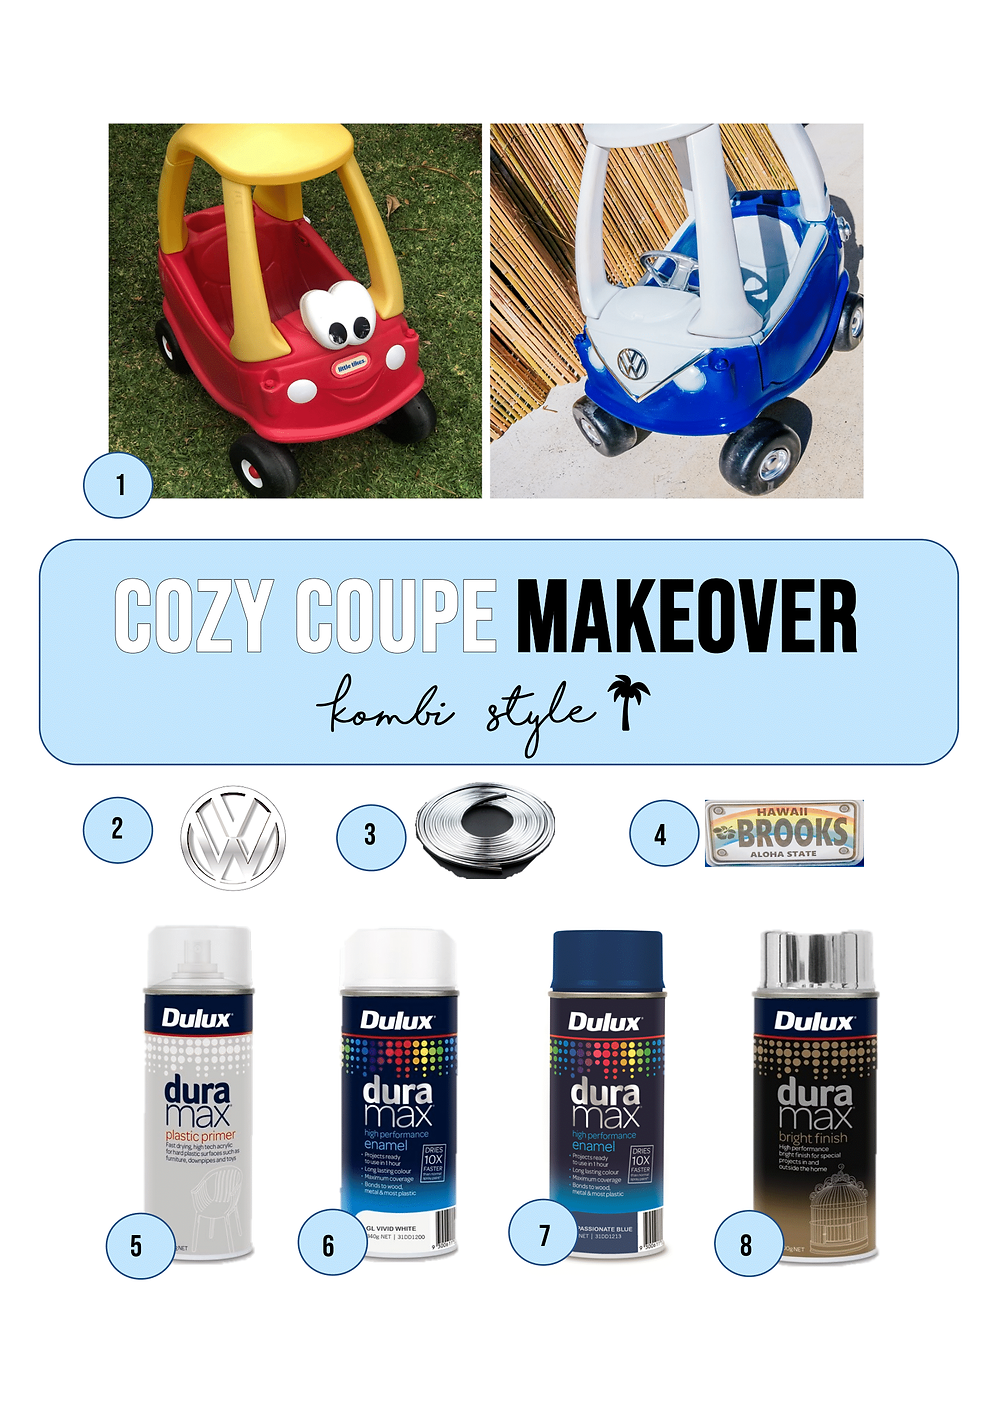 Cozy Coupe Makeover Hack